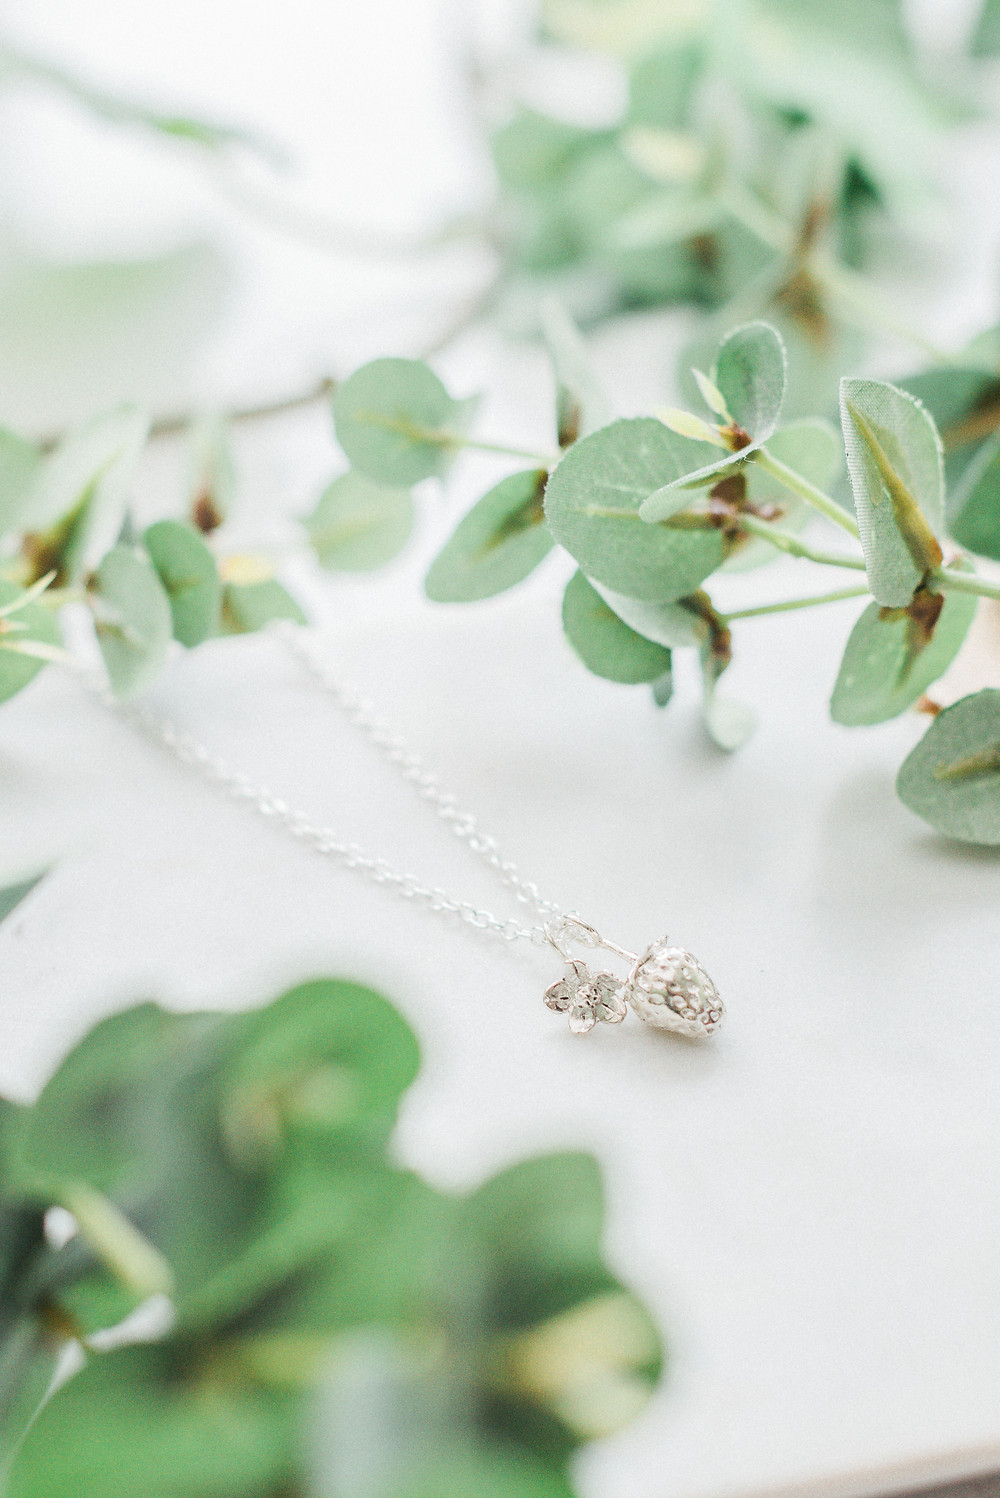 Lucy Flint Jewellery's strawberry pendant is beautifully crafted by a true artisan. Darley and Underwood Photography.